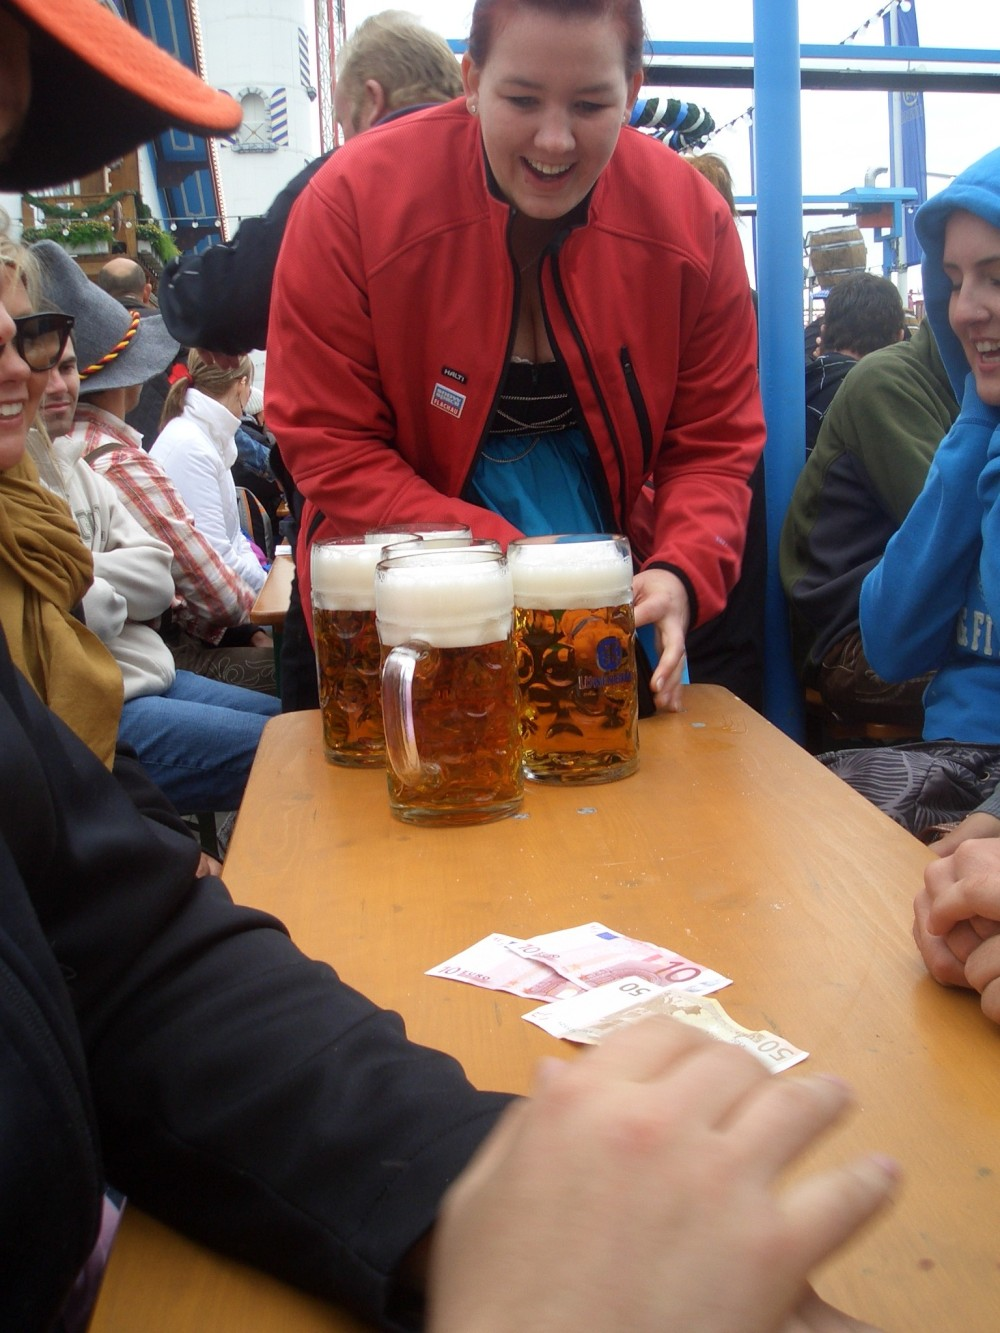 Bring cash to your beer frau at Oktoberfest